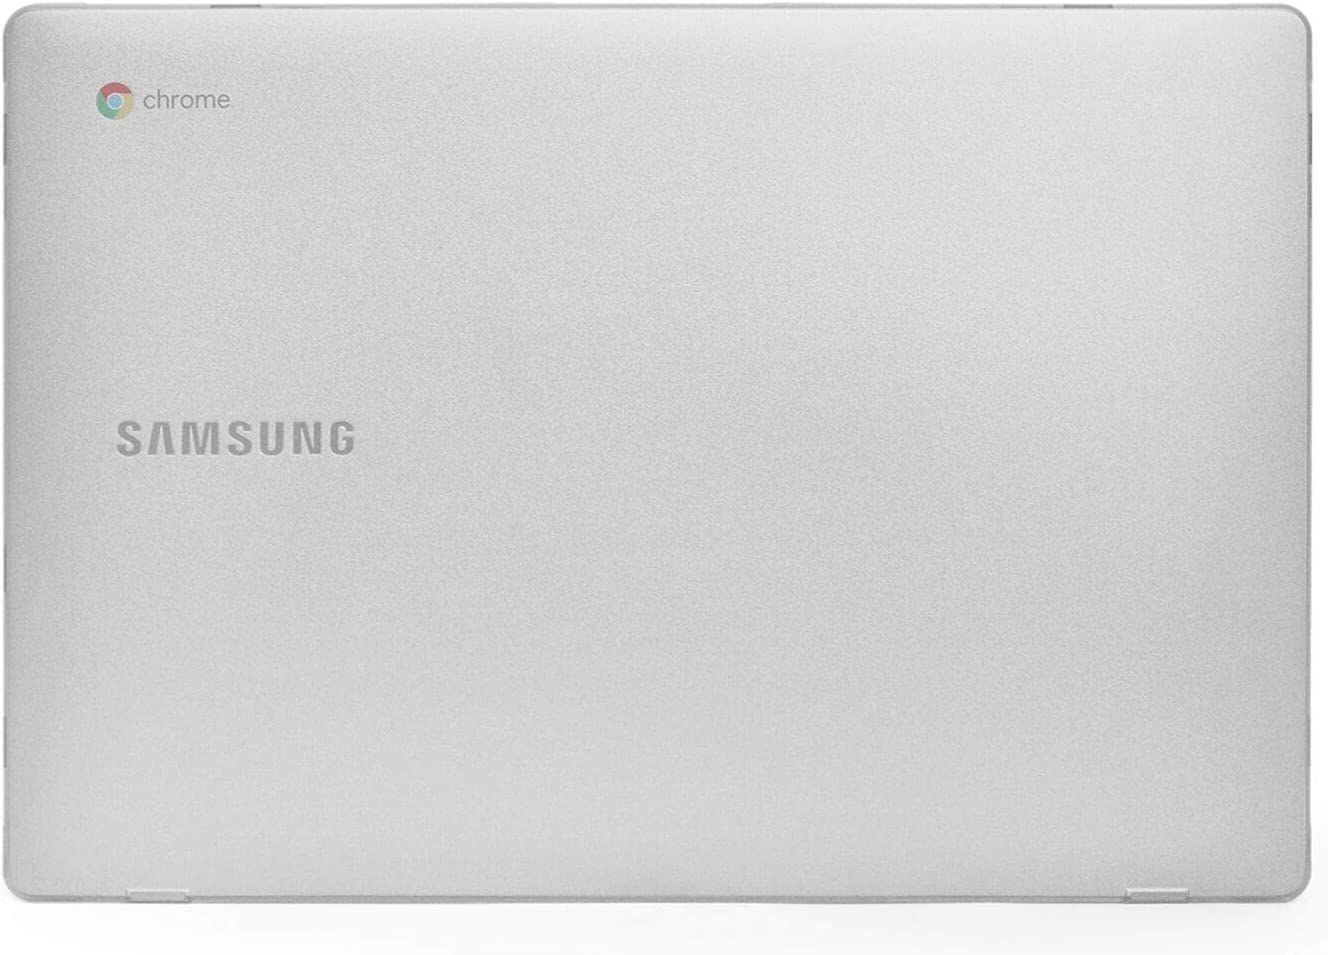 mCover Hard Shell Case for New 2020 15.6'' Samsung ChromeBook 4+ XE350XBA Series Laptop (Clear)